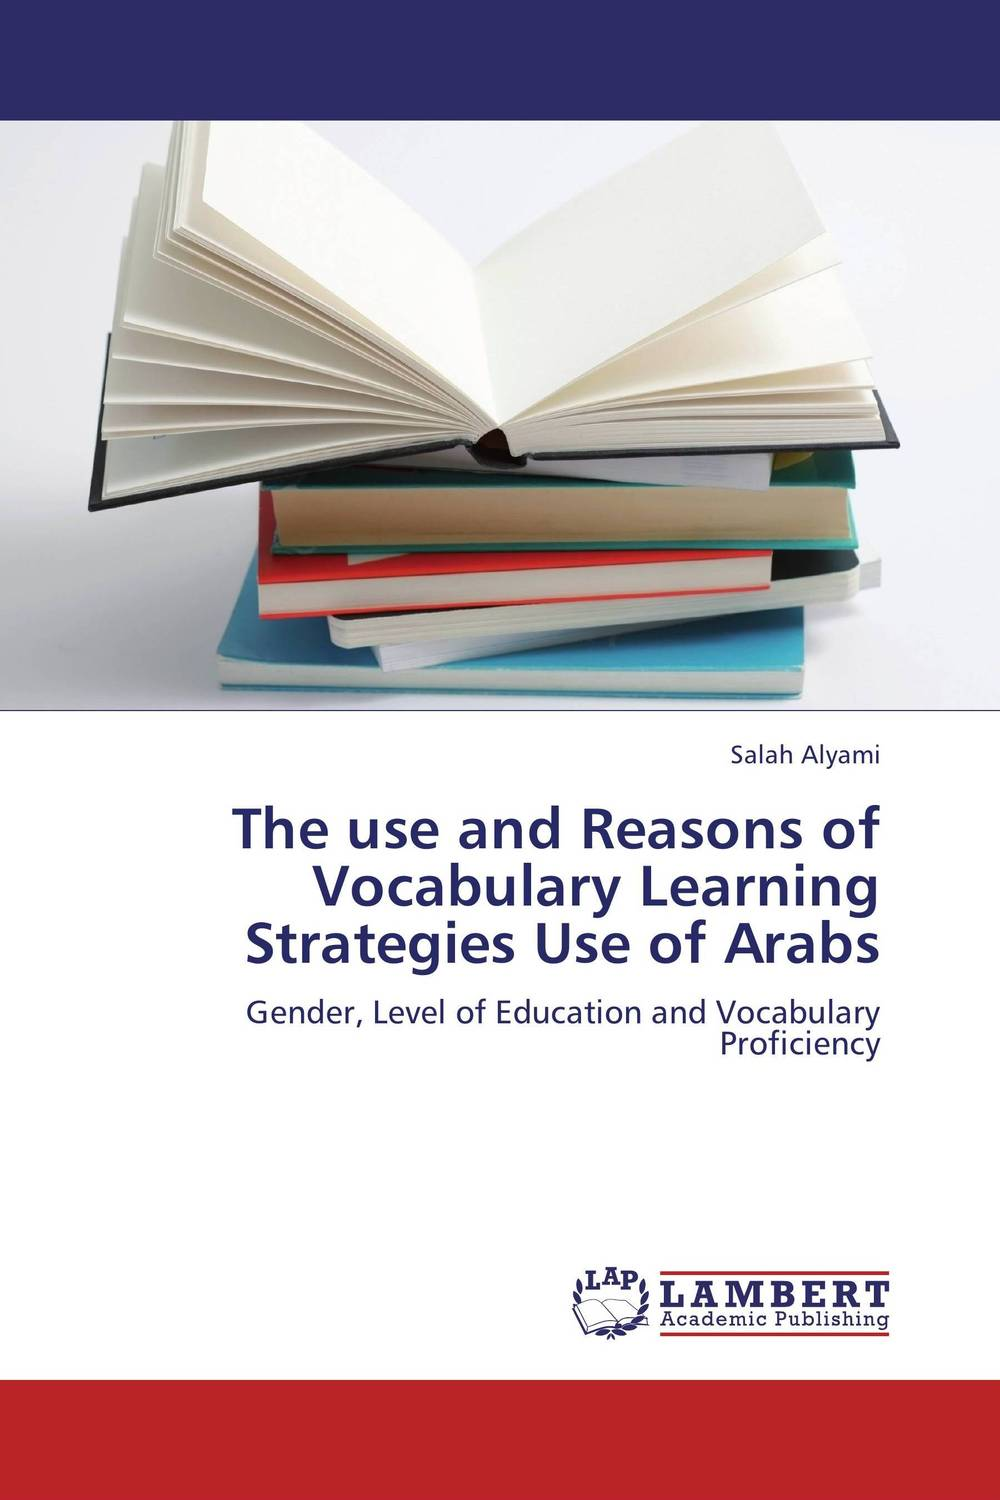 The use and Reasons of Vocabulary Learning Strategies Use of Arabs cassandra c green the effectiveness of a first year learning strategies seminar